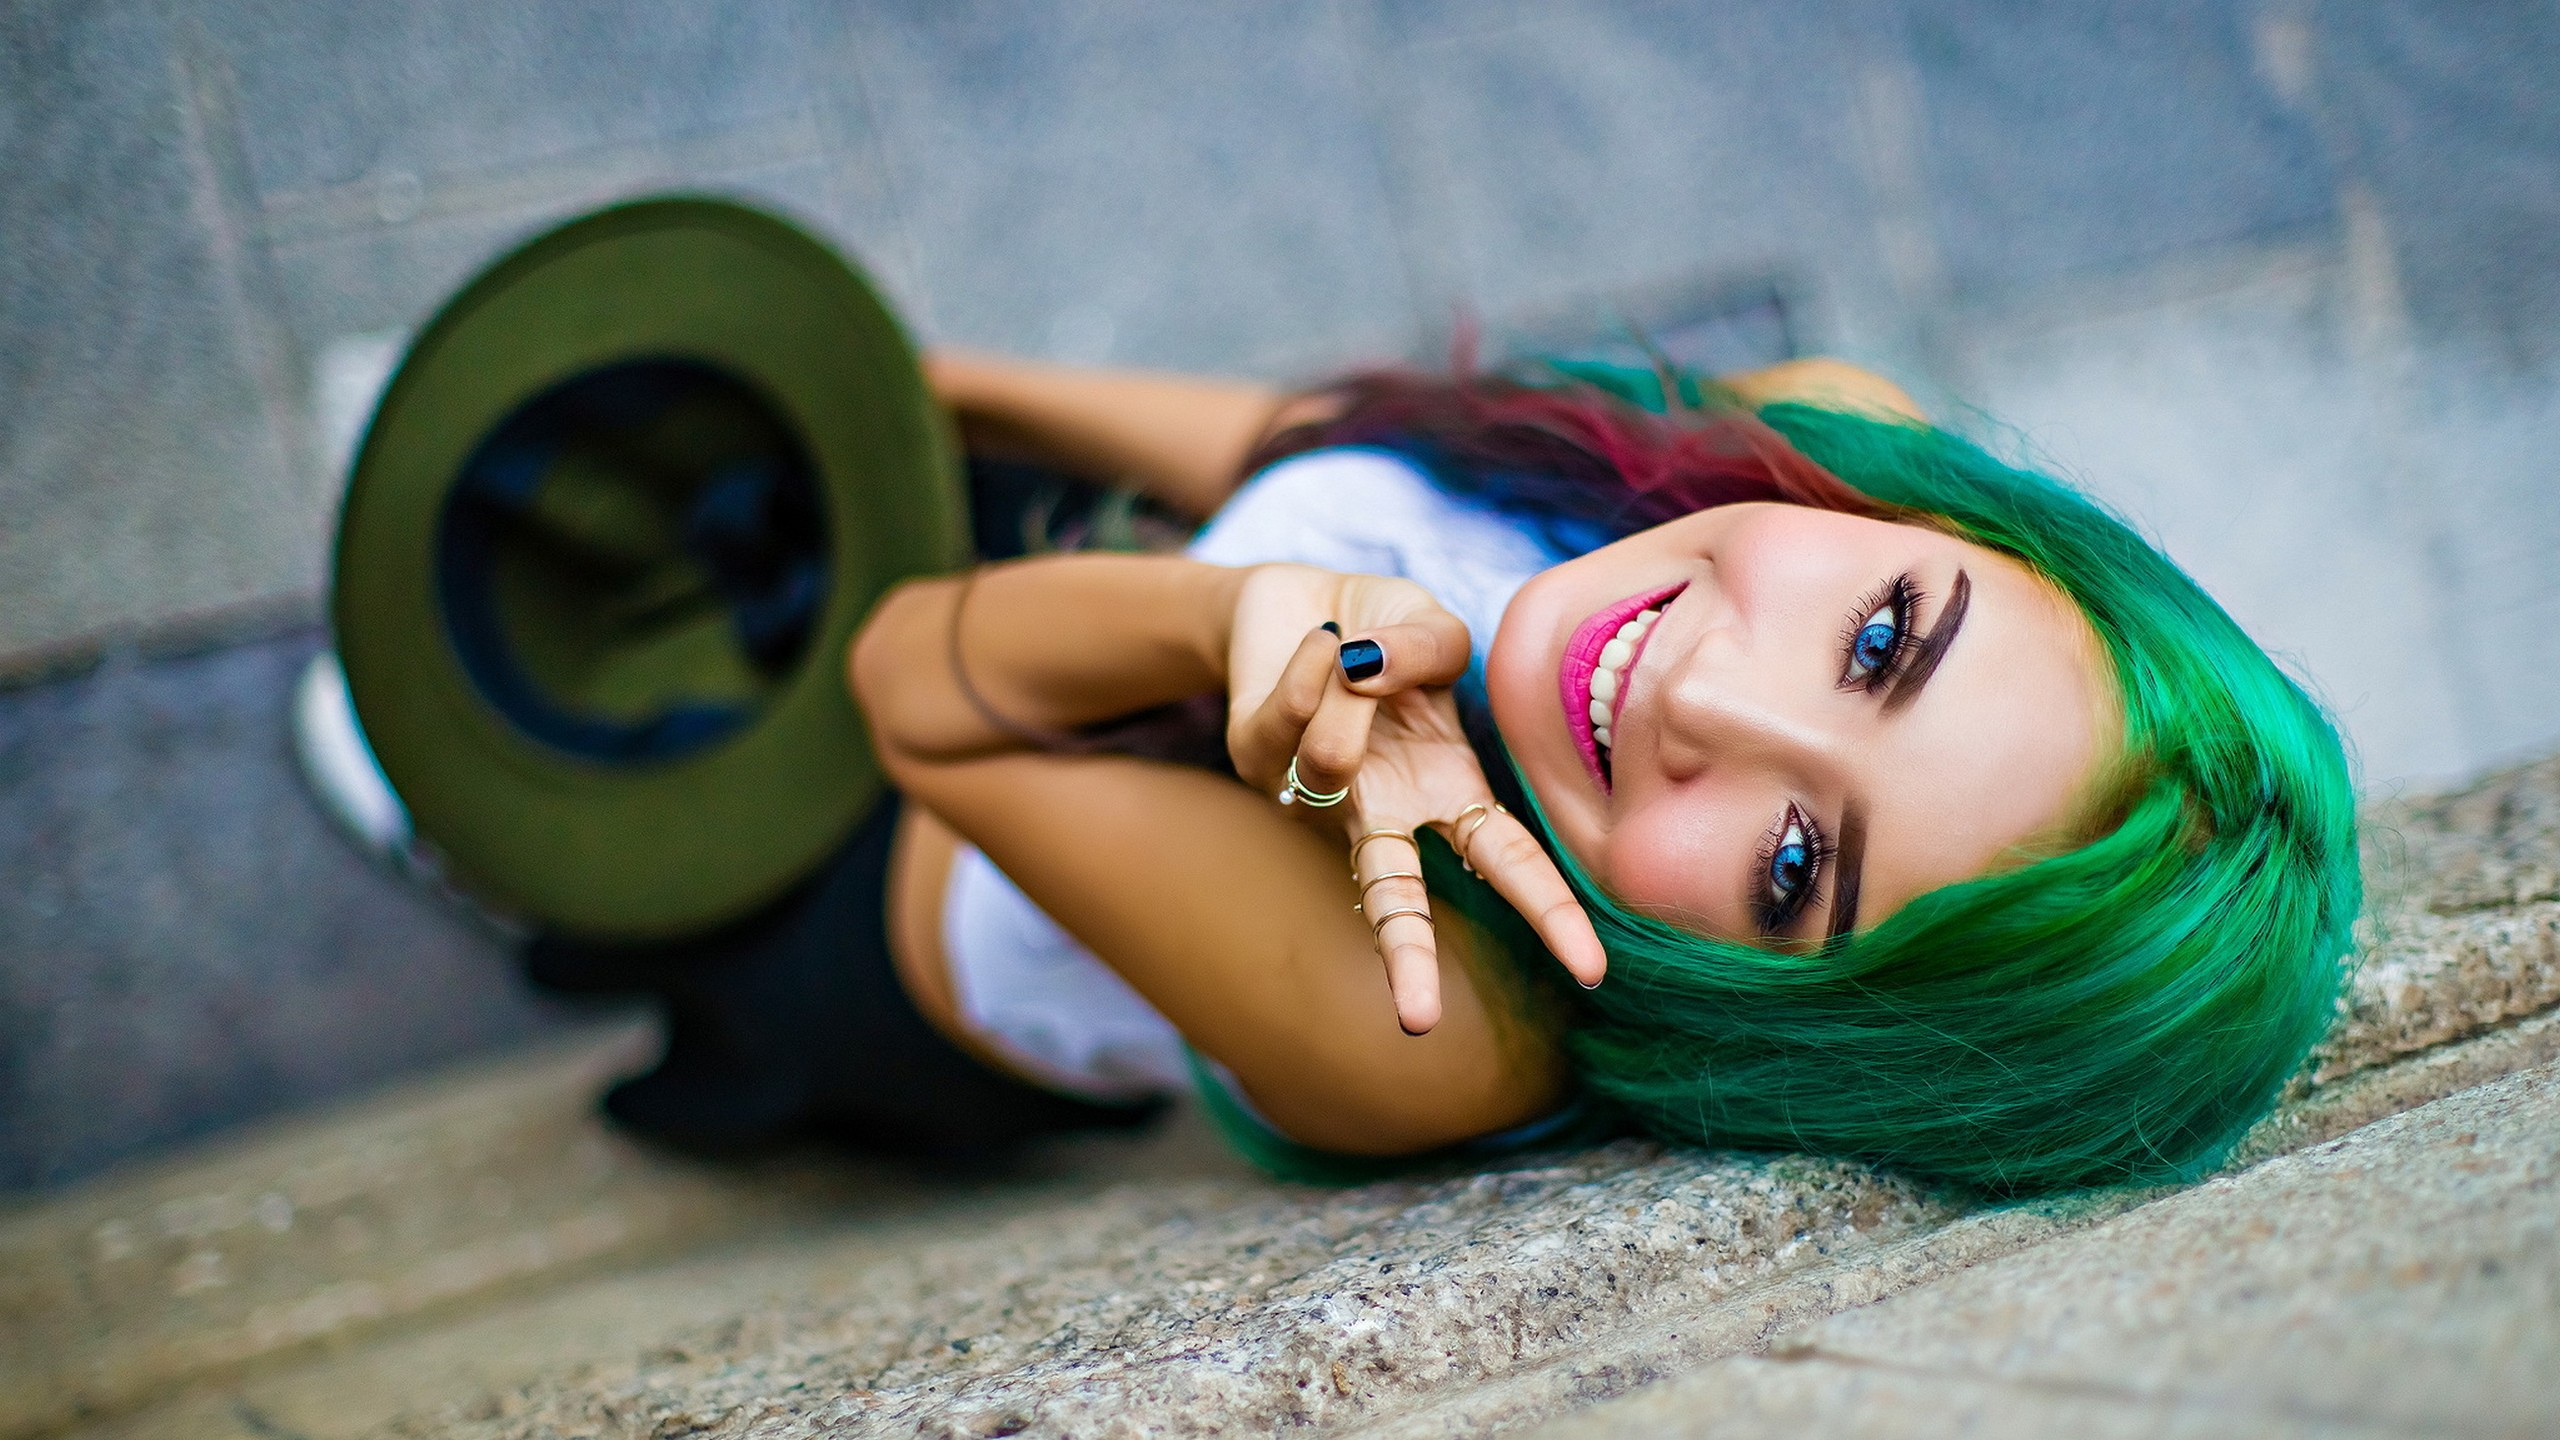 Very Cute Model with Green Hair by crenk